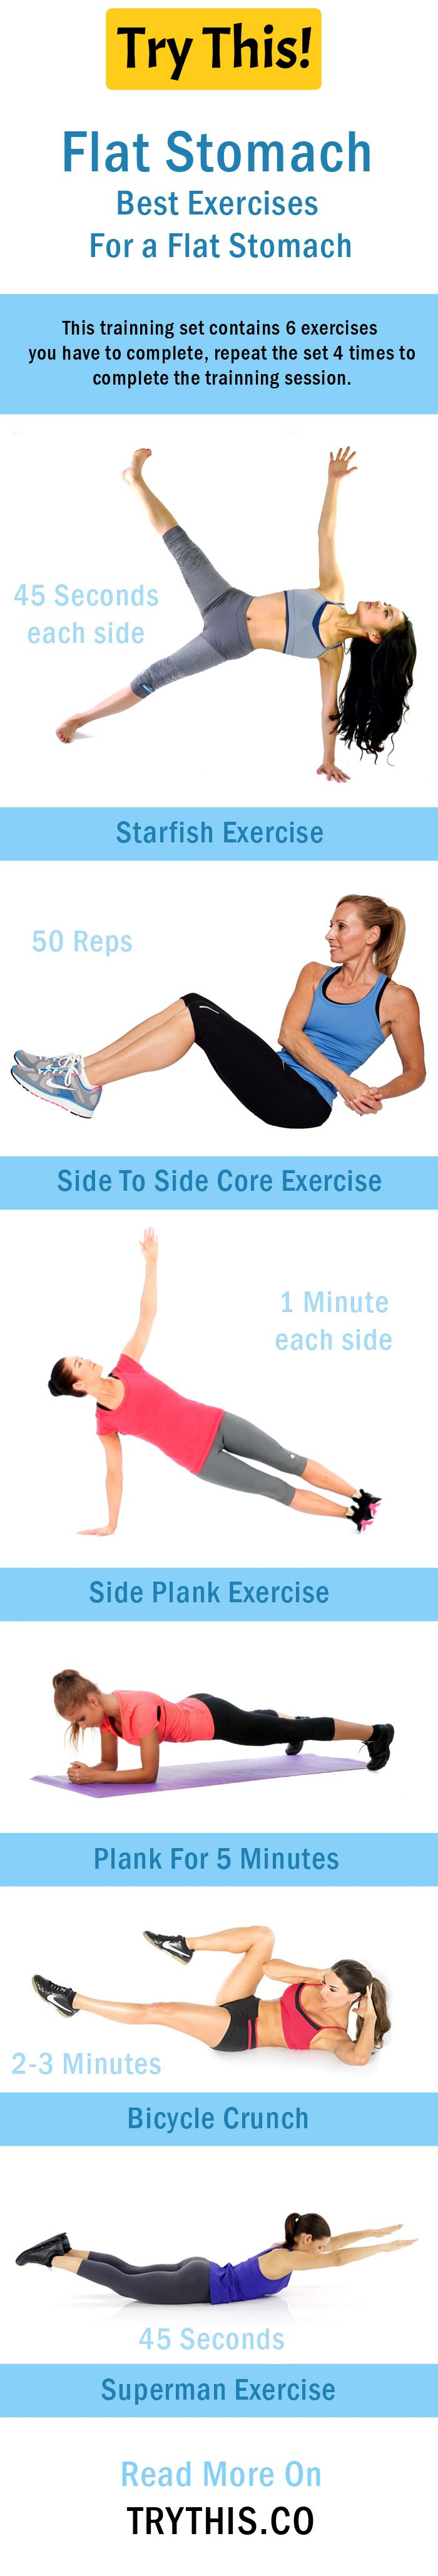 Flat Stomach: Best Exercises For a Flat Stomach